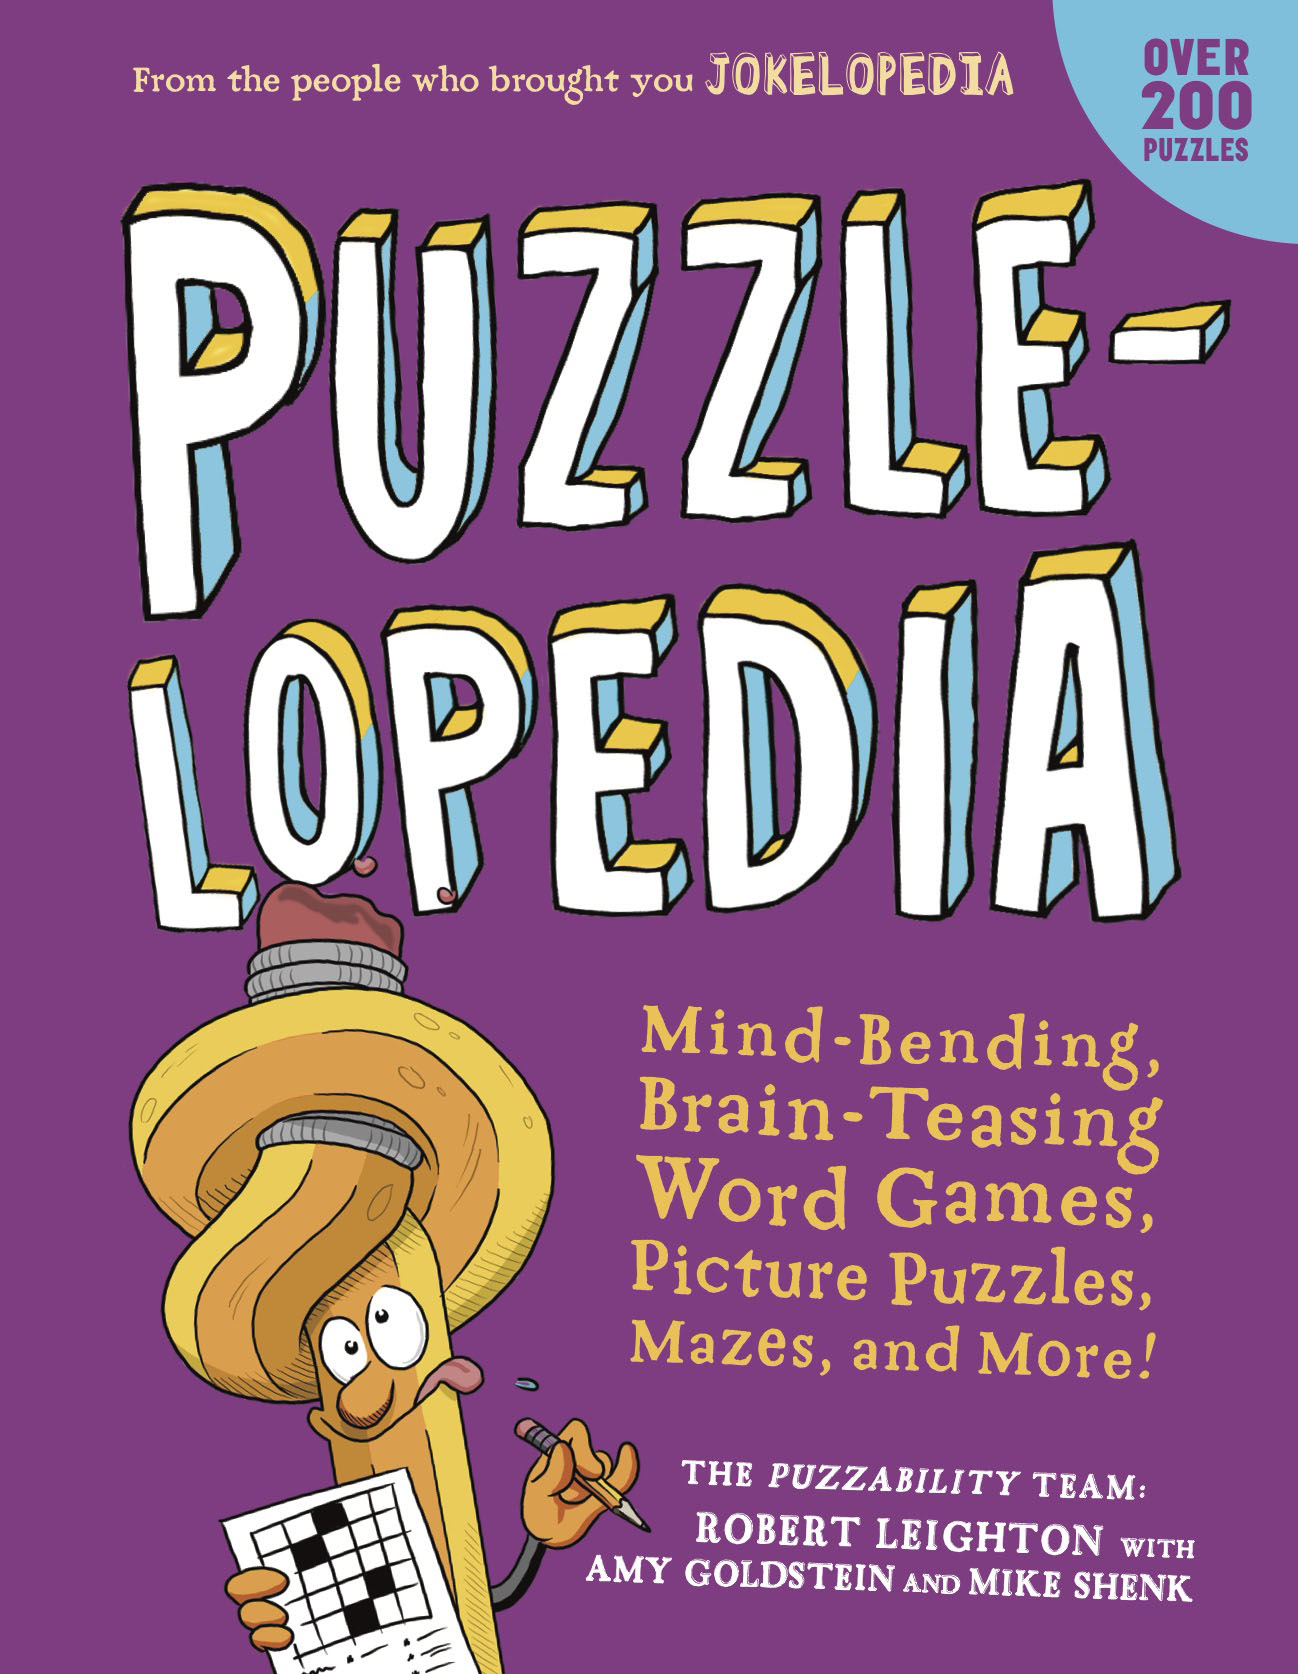 Puzzlelopedia cover TRIMMED